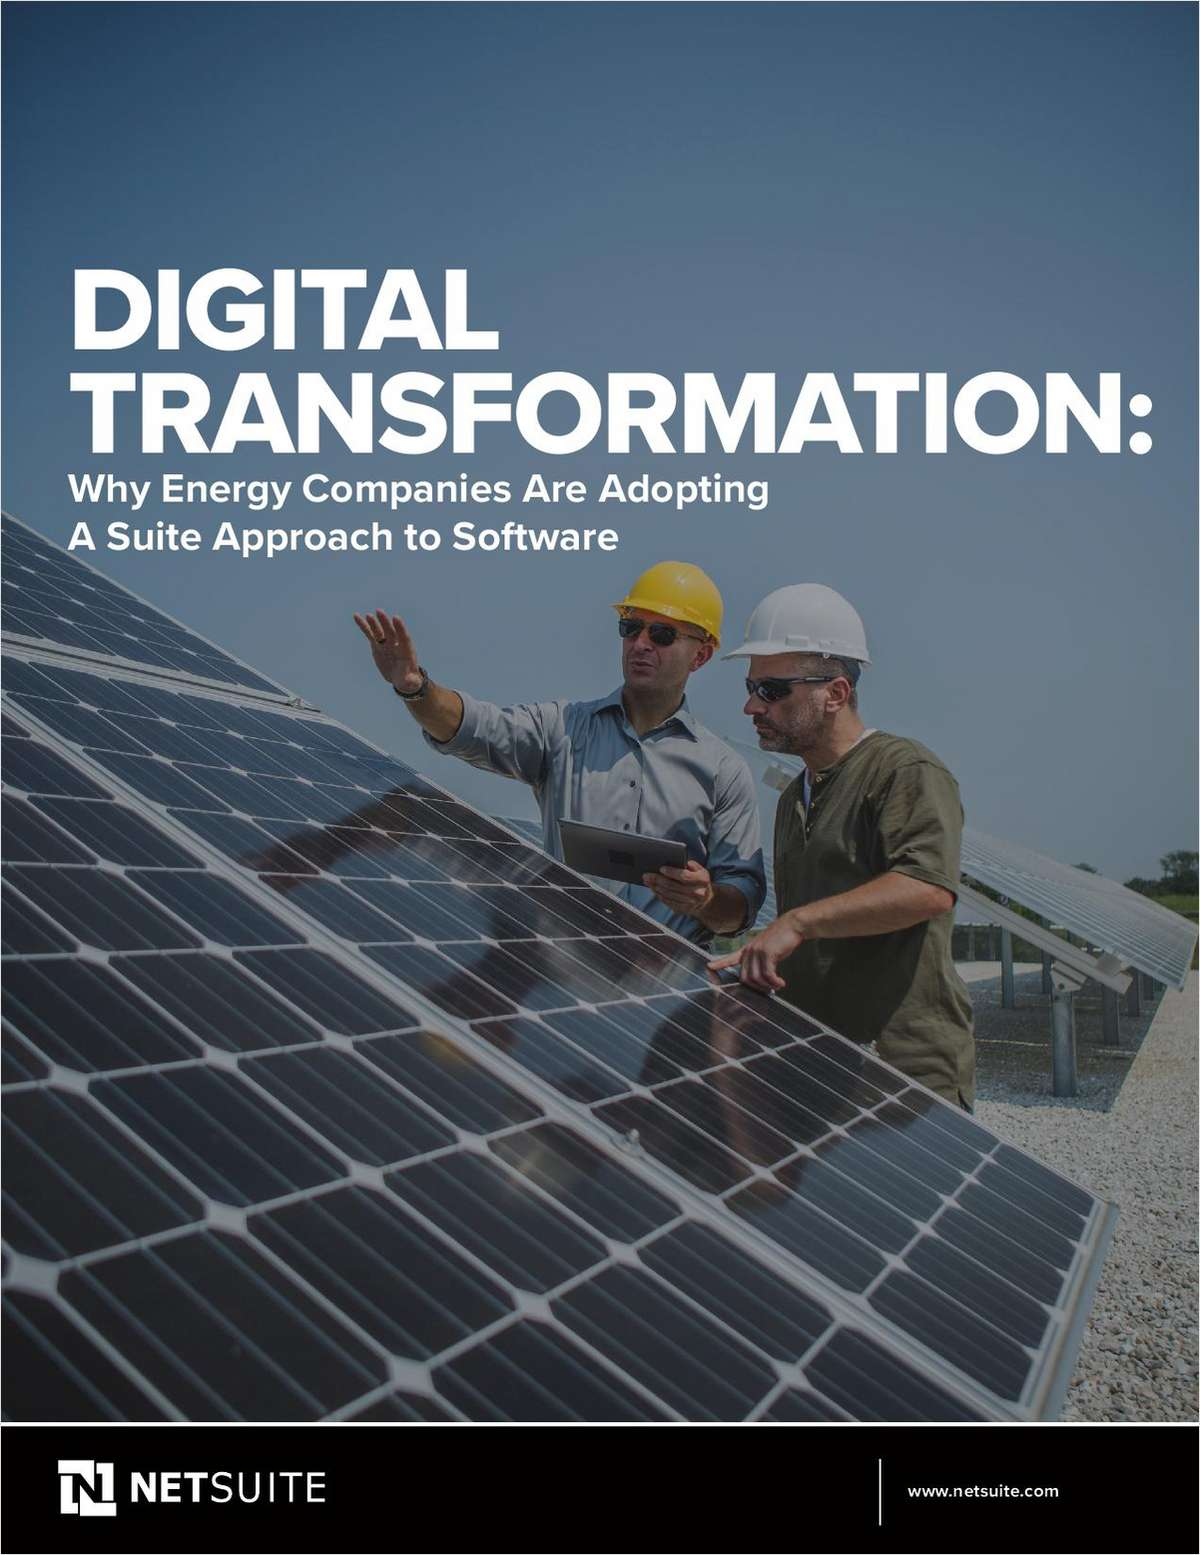 Digital Transformation: Why Energy Companies Are Adopting A Suite Approach to Software